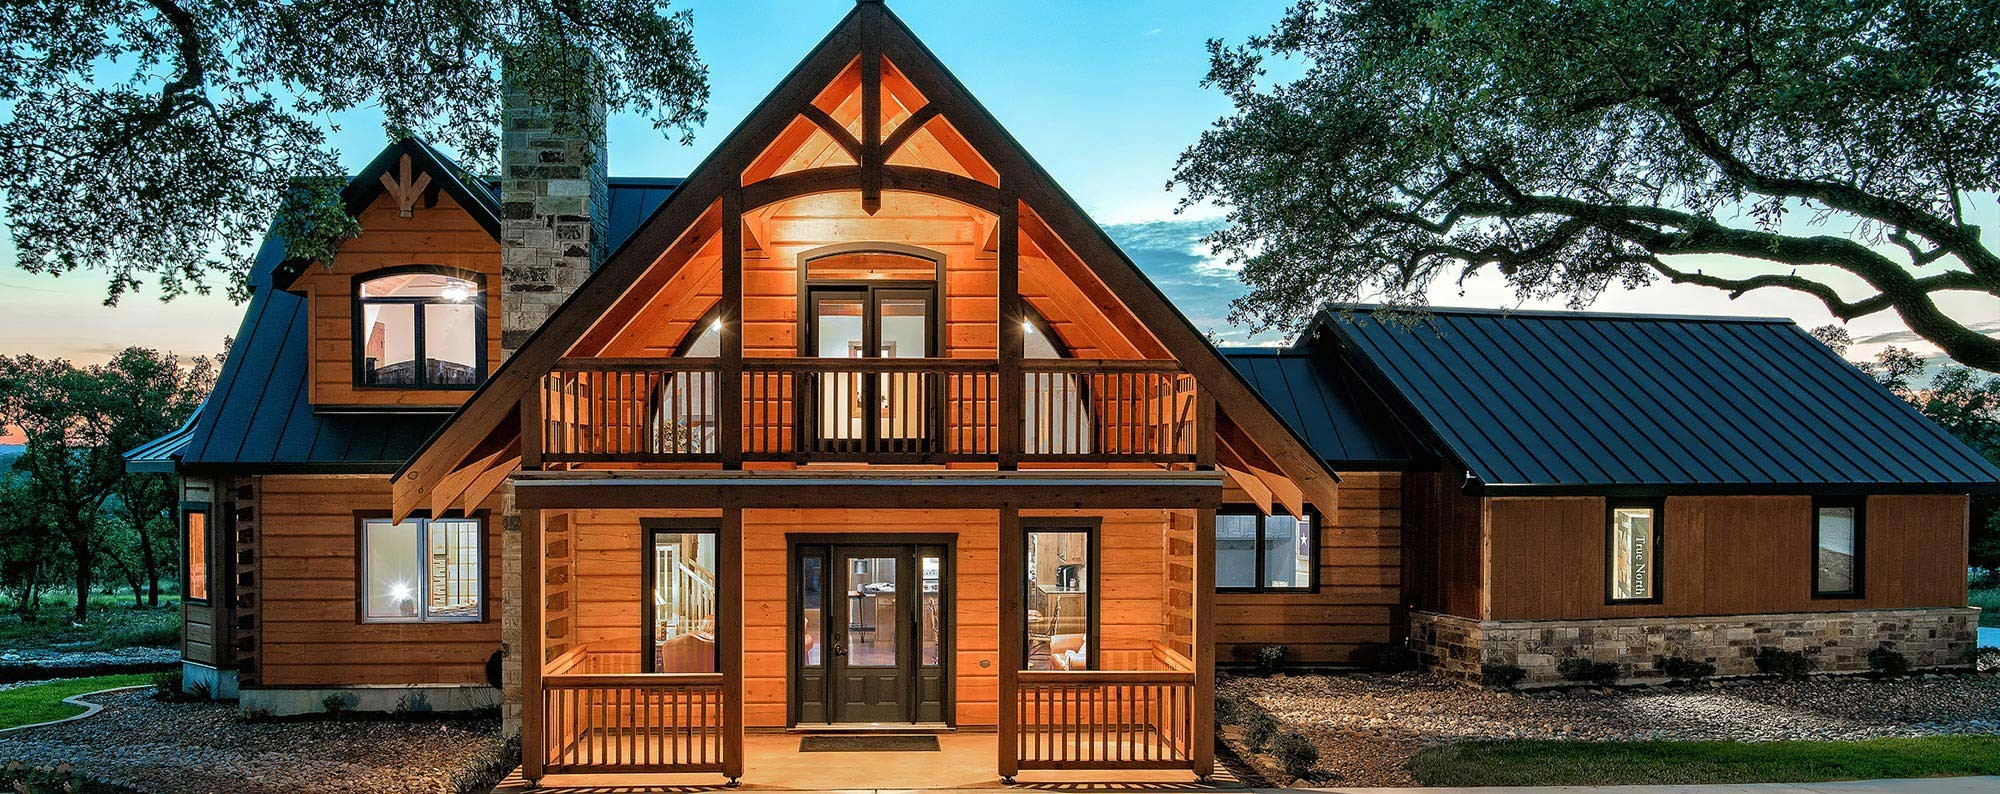 image  - 5 Benefits of Mountain Ridge Handcrafted Log Homes and Log Cabins